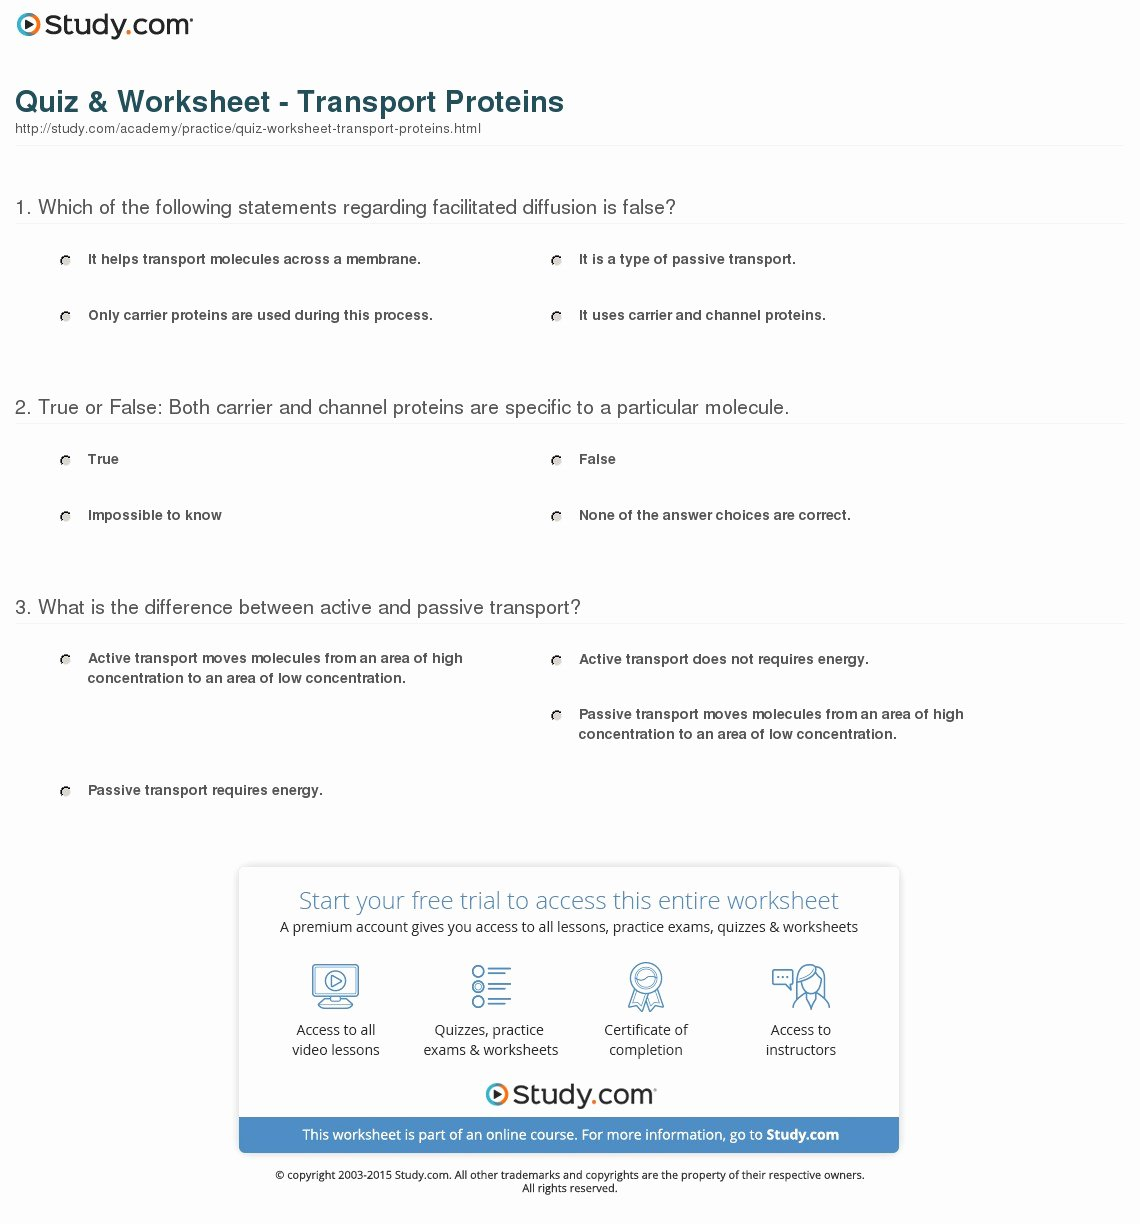 Passive Transport Worksheet Answers Lovely which Of the Following Statements is True About Passive